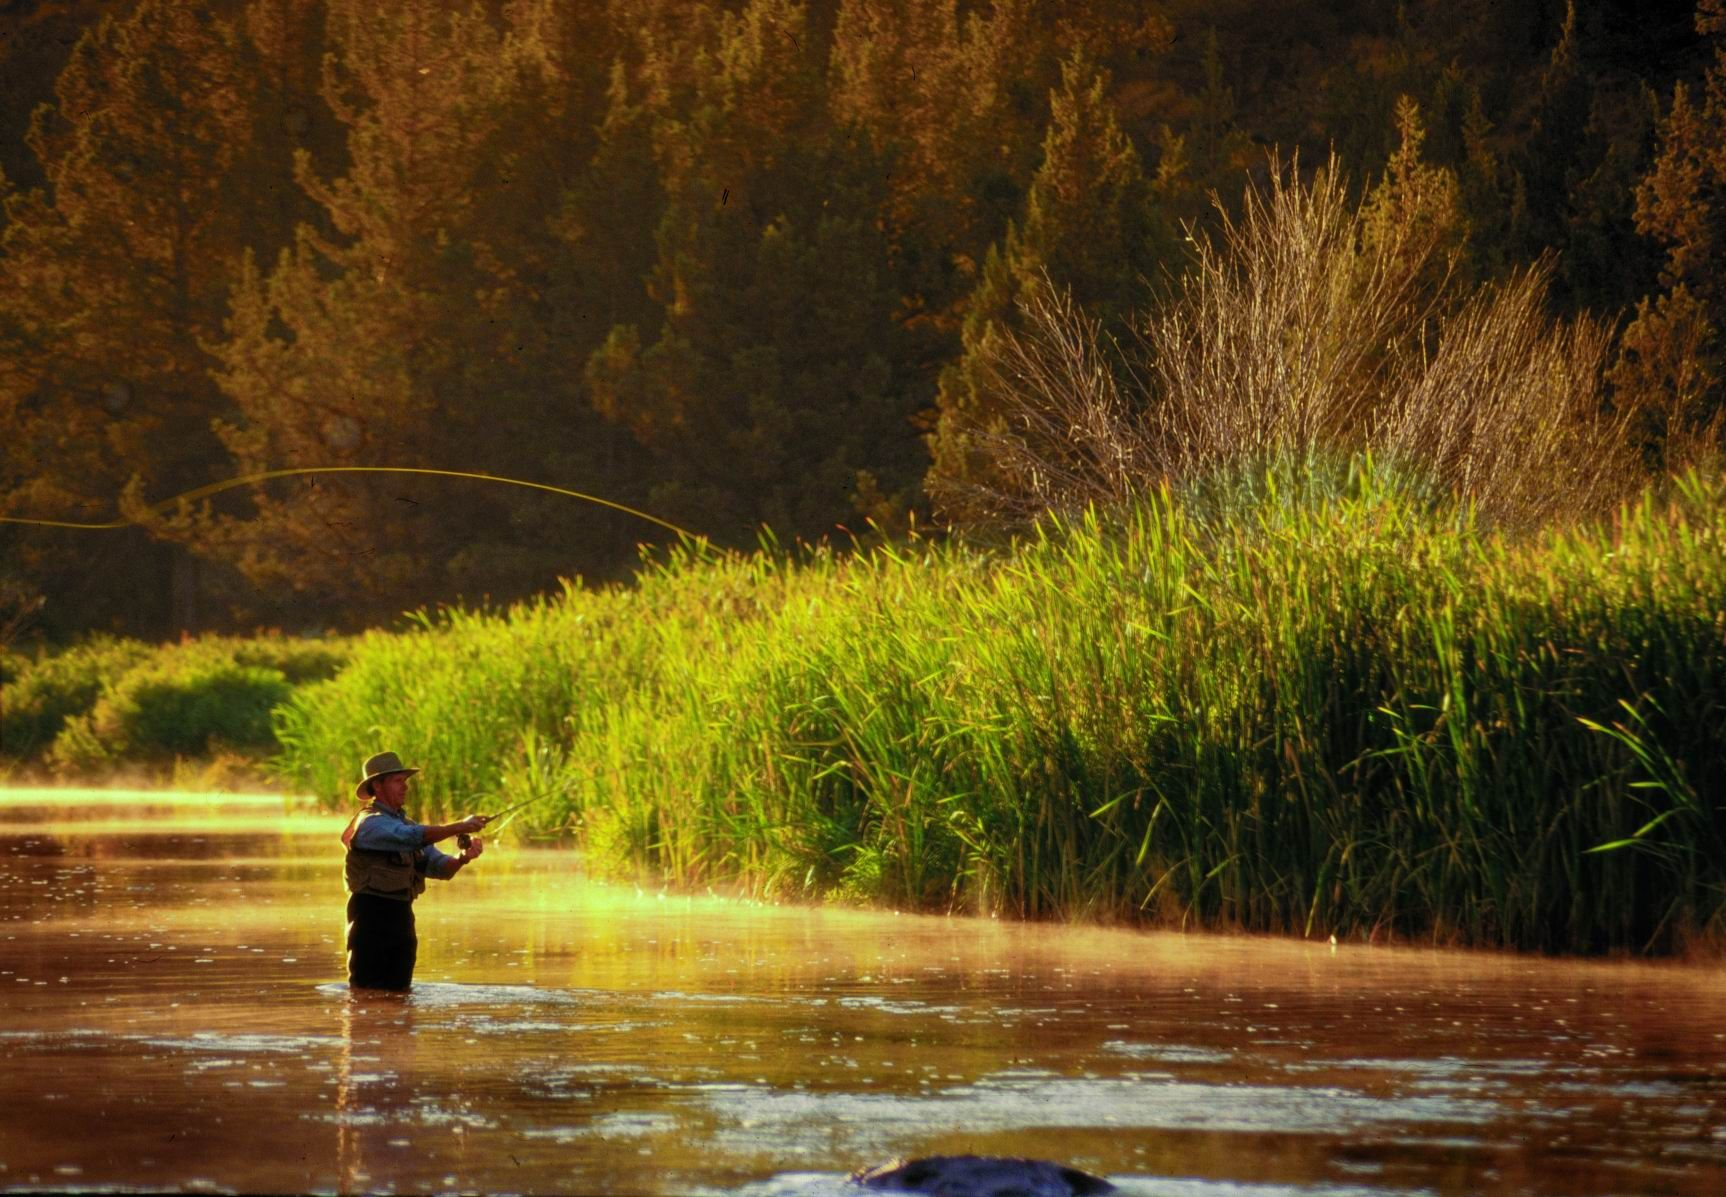 Eagle Crest Is An Ideal Base Camp For Central Oregon Recreation In All Four Seasons Fly Fishing Oregon Fly Fishing Park City